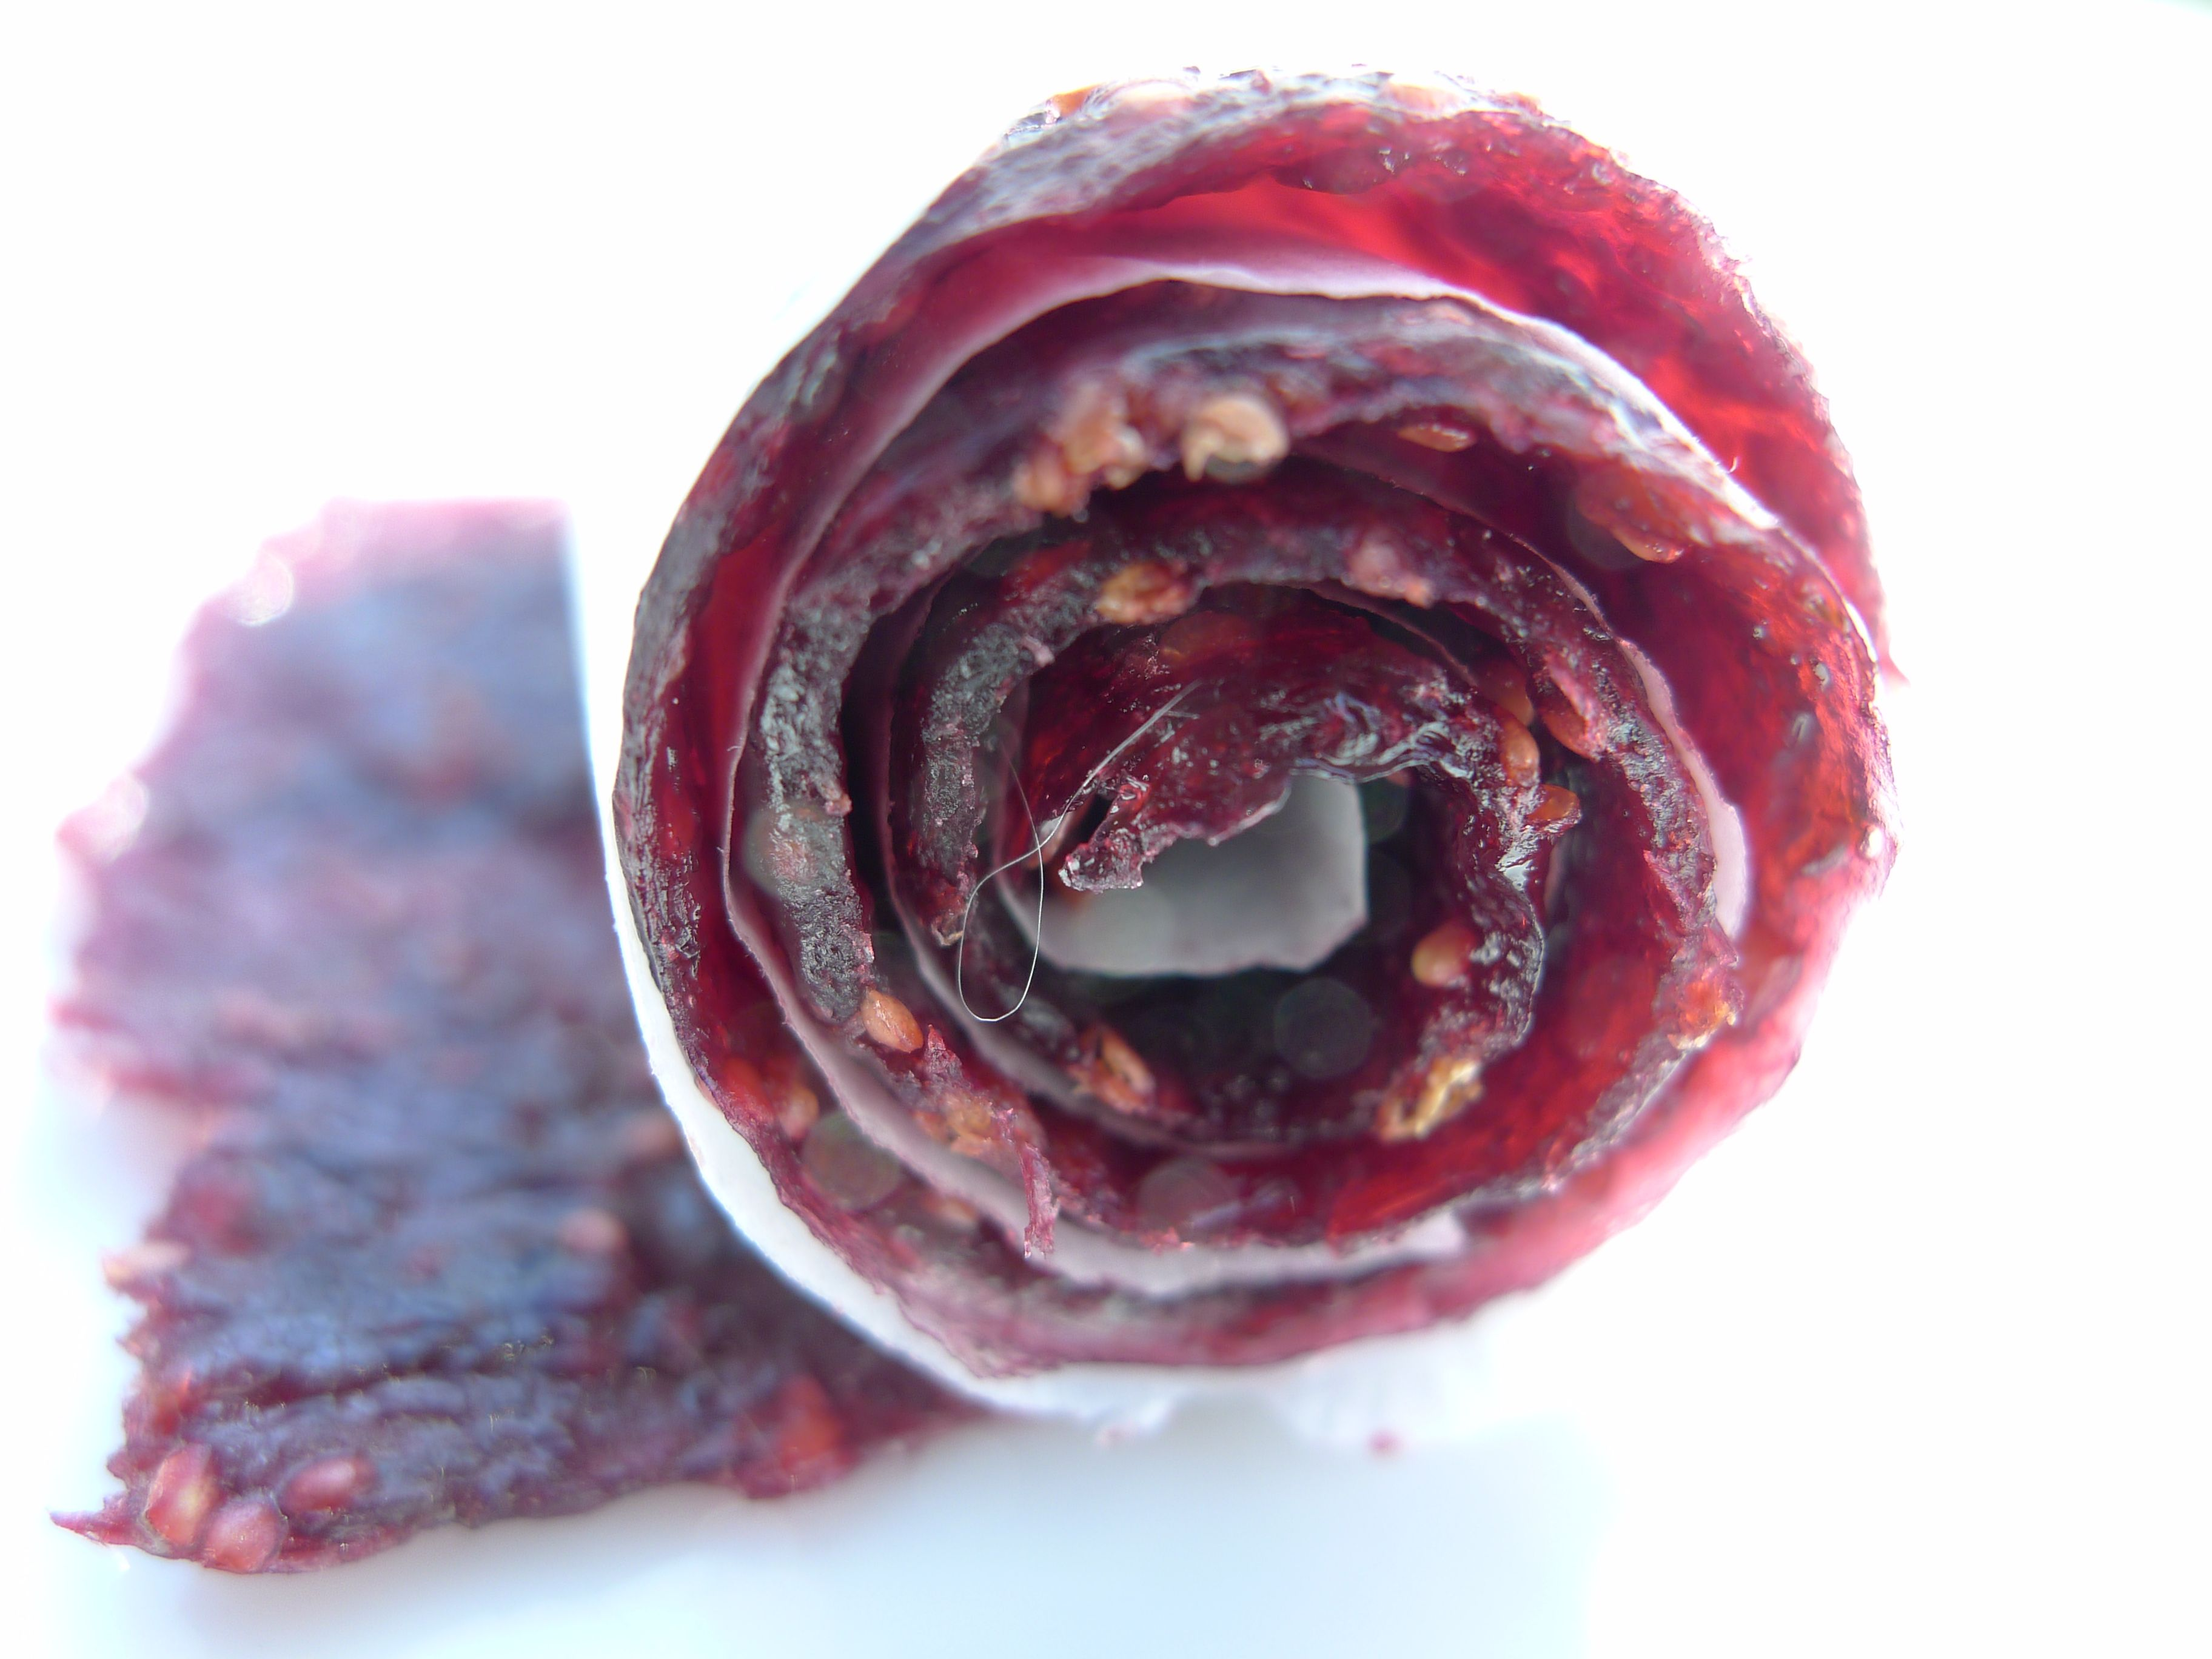 Handmade fig-blackberry fruit leather from Healthfully Ever After